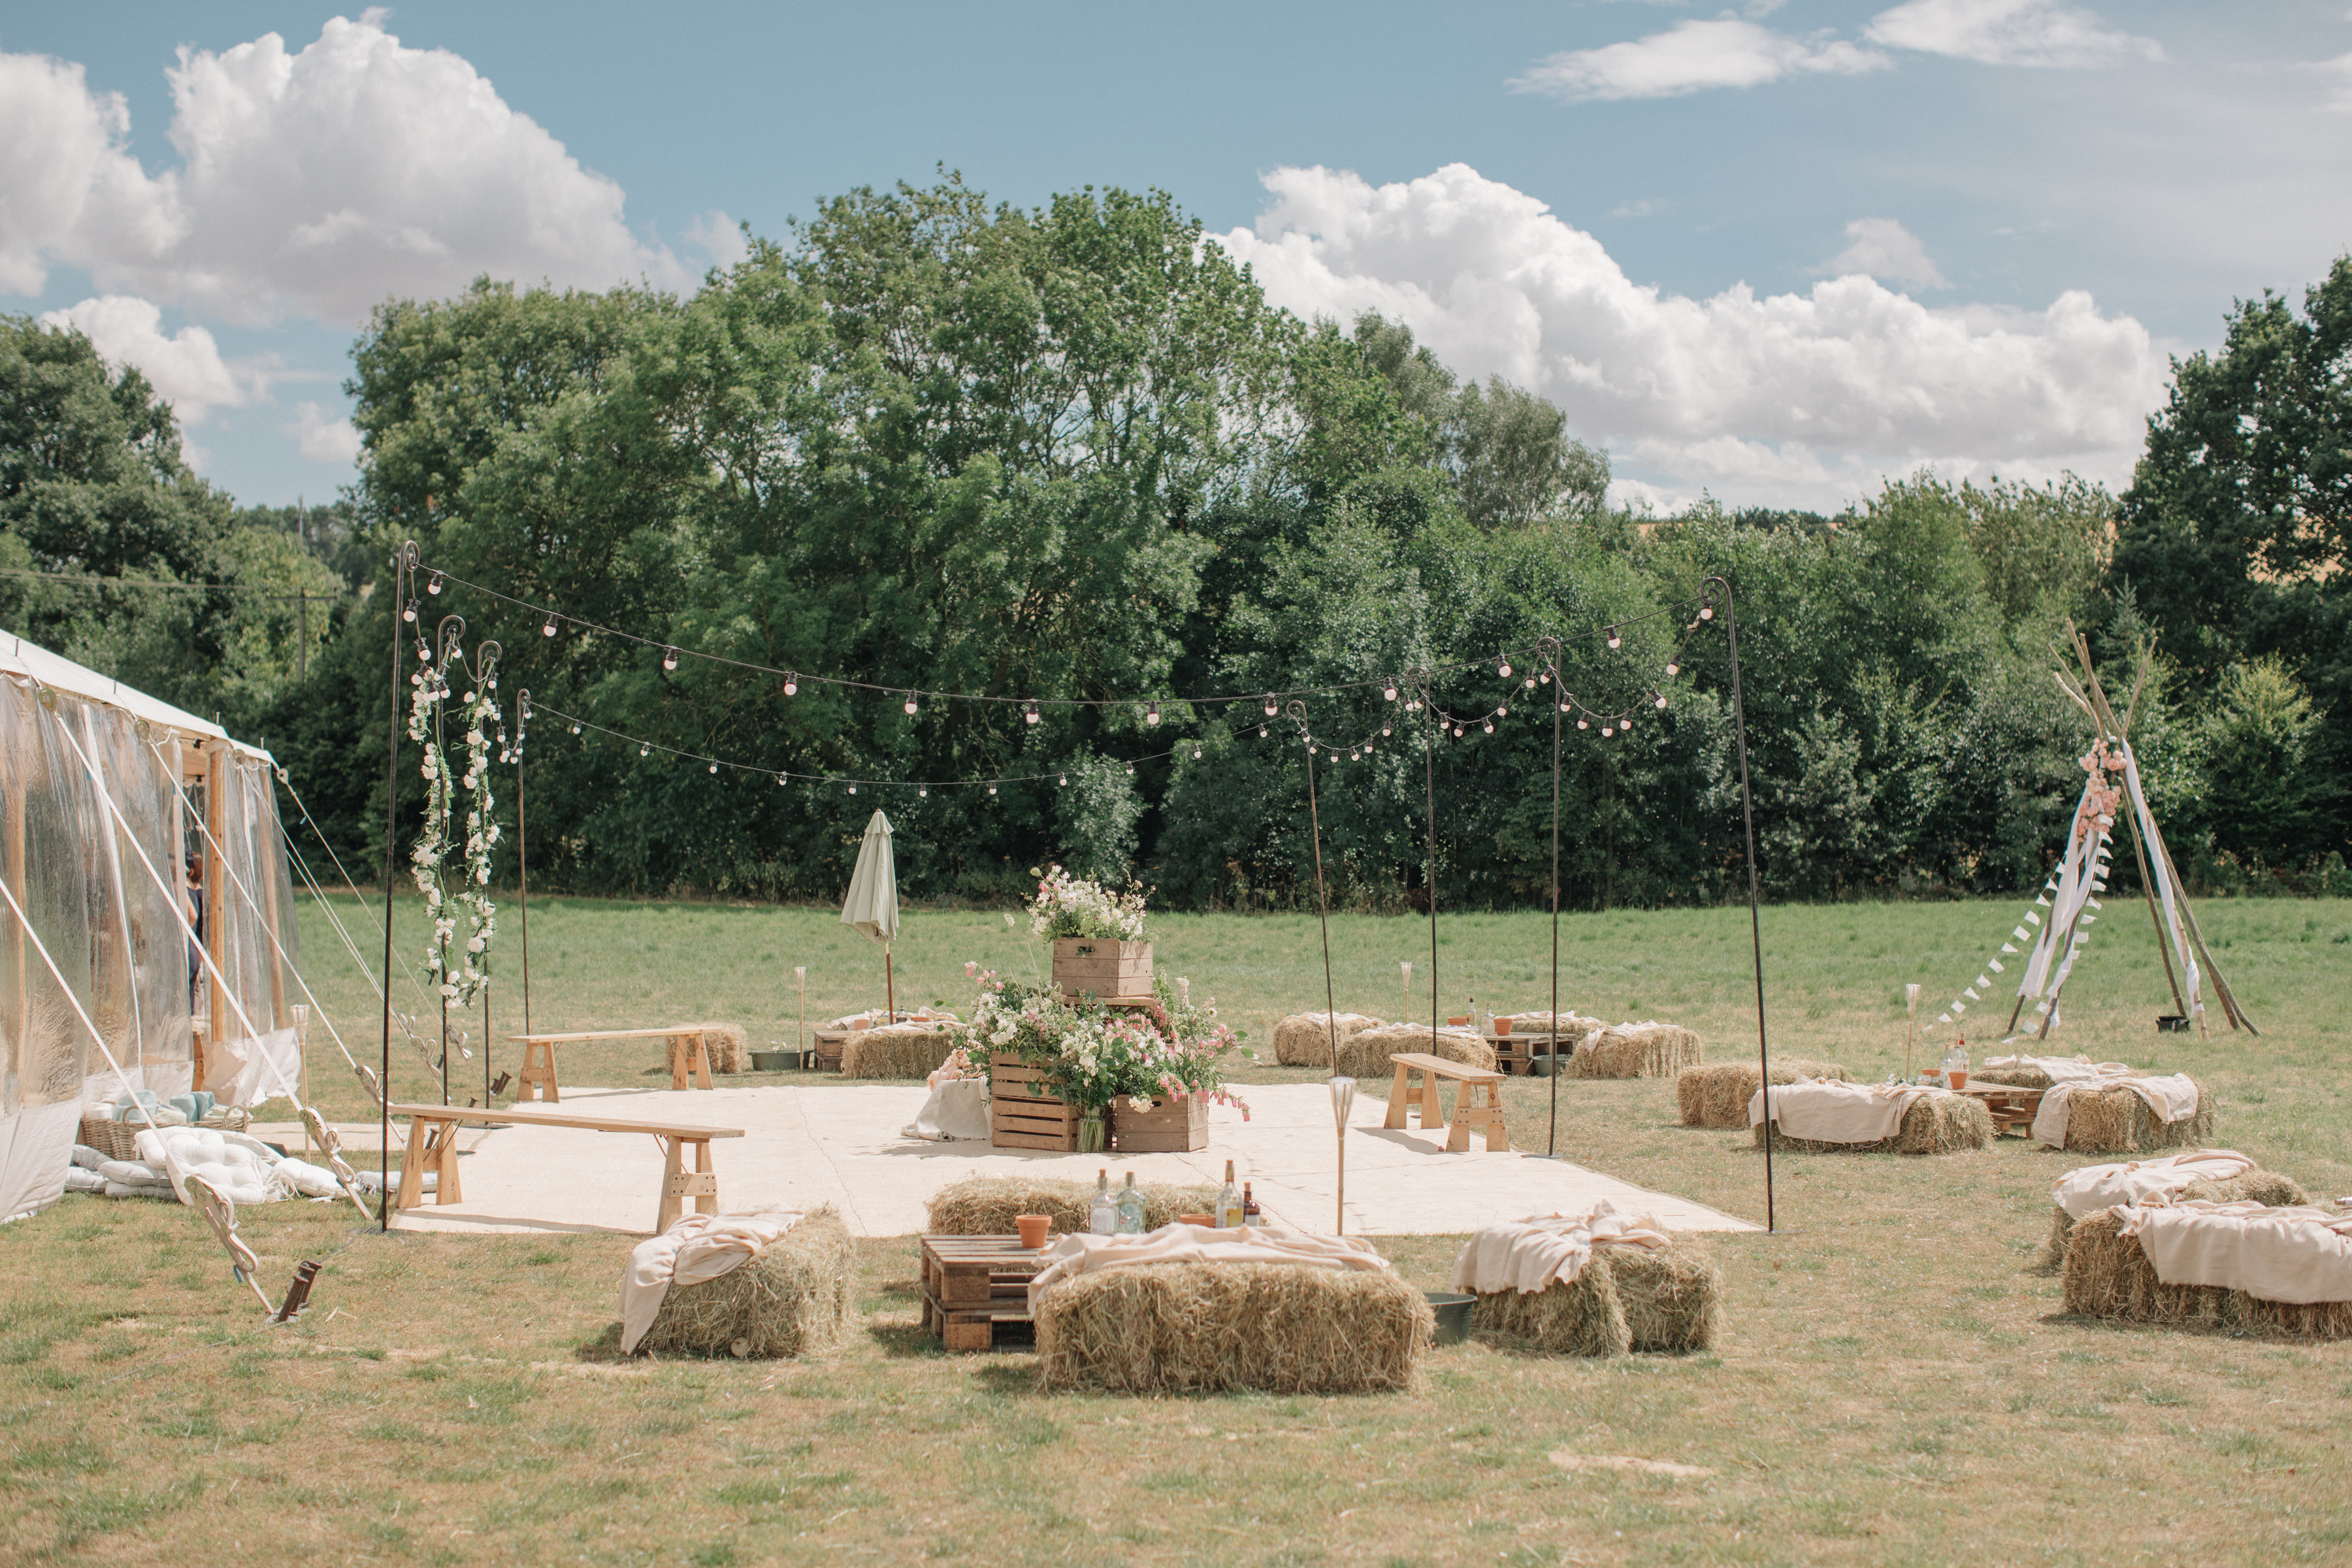 Steph & Ed's PapaKåta Sperry Tent wedding at home in Nottingham captured by M & J Photography: Festoon Terrace Outdoor Seating Area